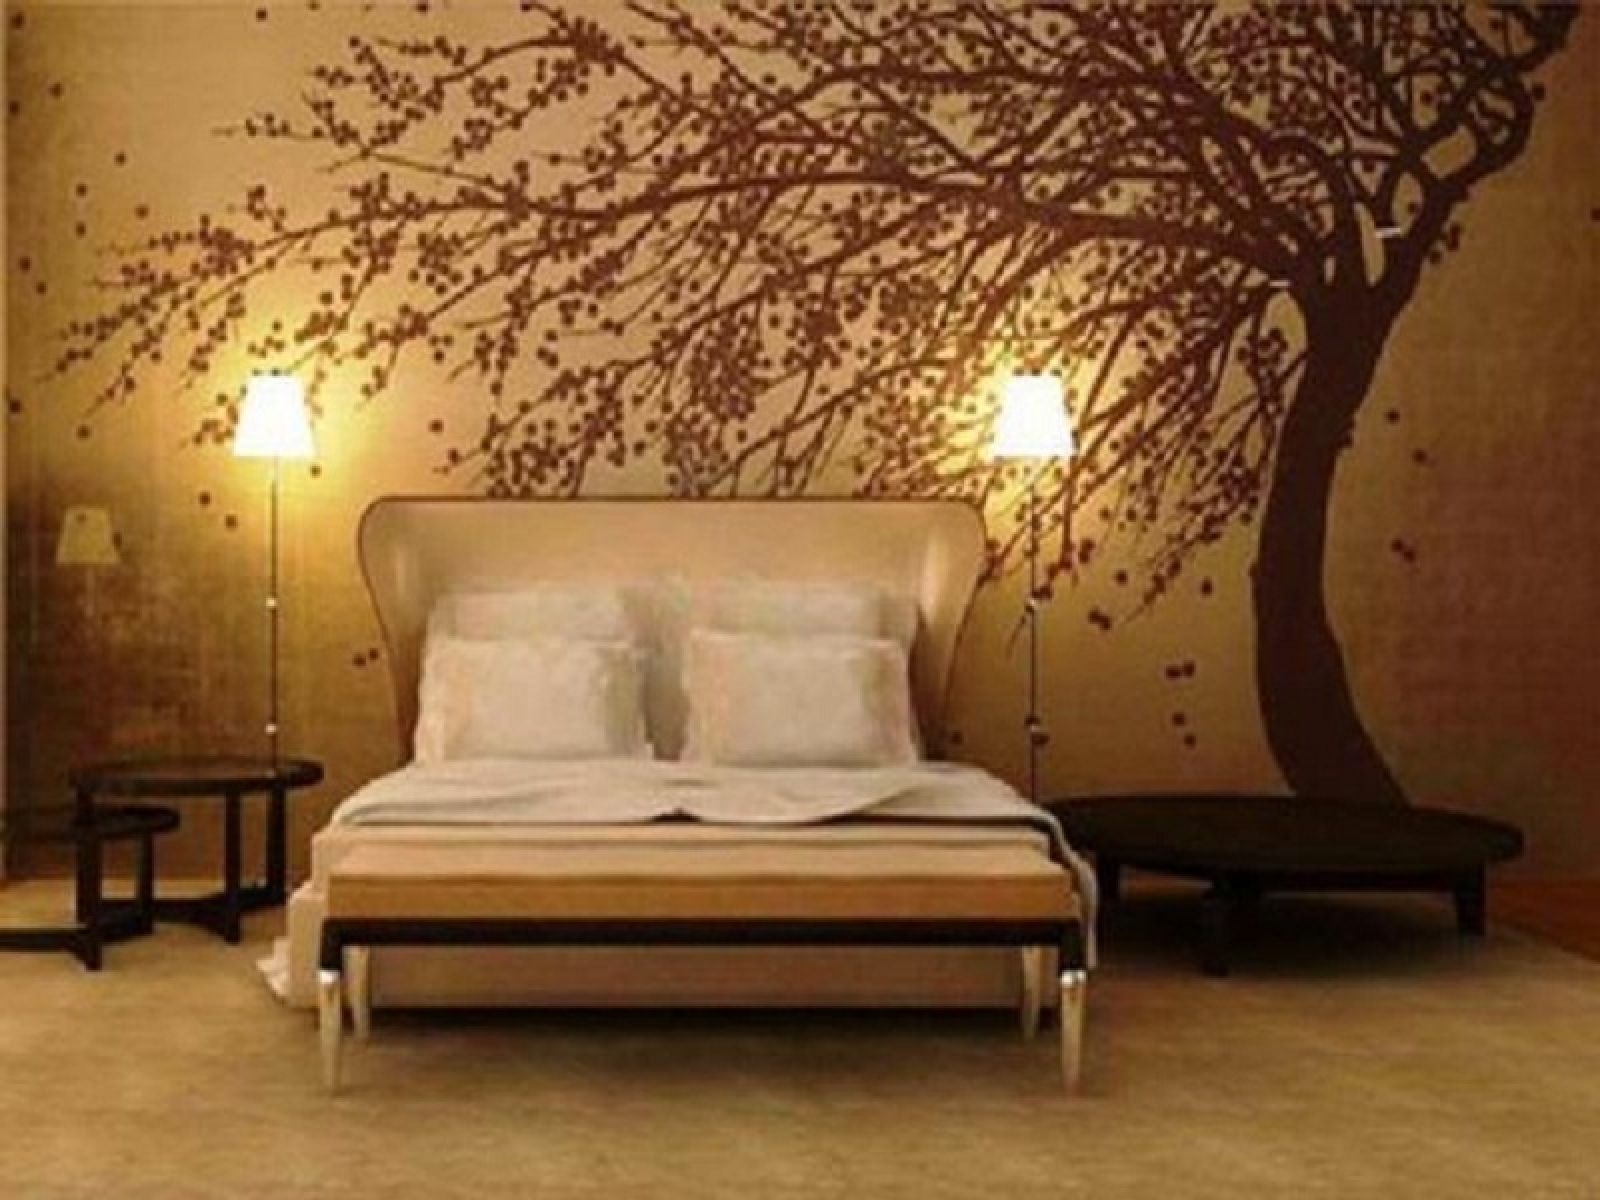 30 Best Wallpaper Designs For Bedrooms Uk 2017 Bedroomwallapers Wallpaperdesigns Homedecore2017